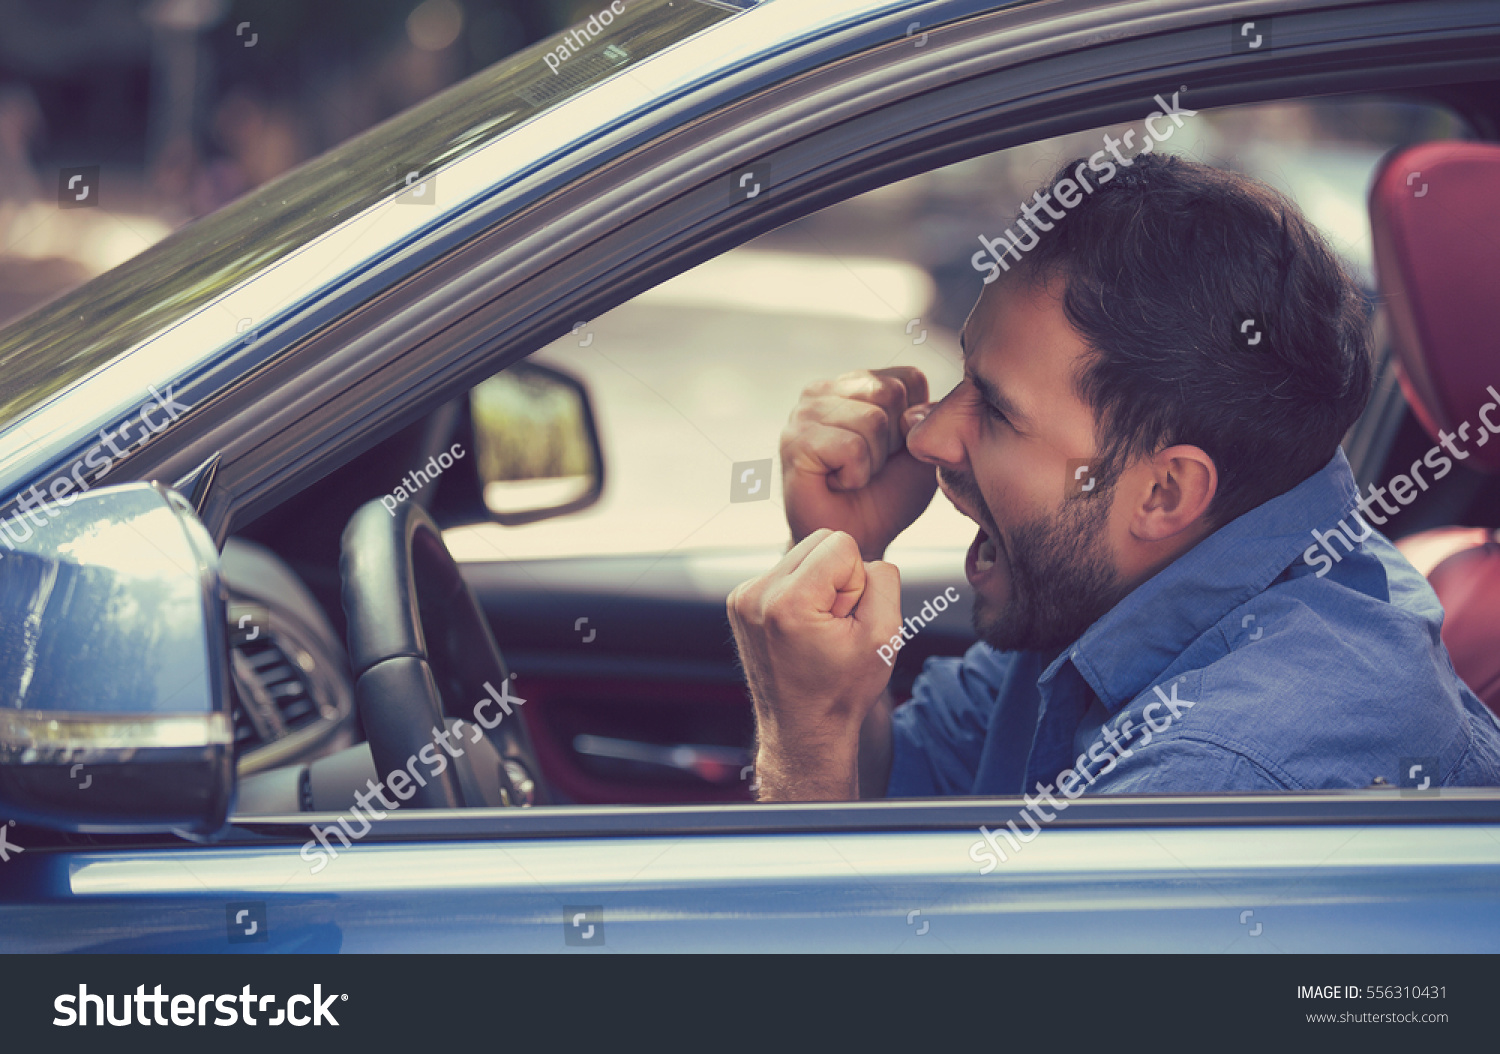 Grimace face clip art stock photo woman pulls a face in upset - Side Profile Angry Driver With Fists Up Screaming Negative Human Emotions Face Expression